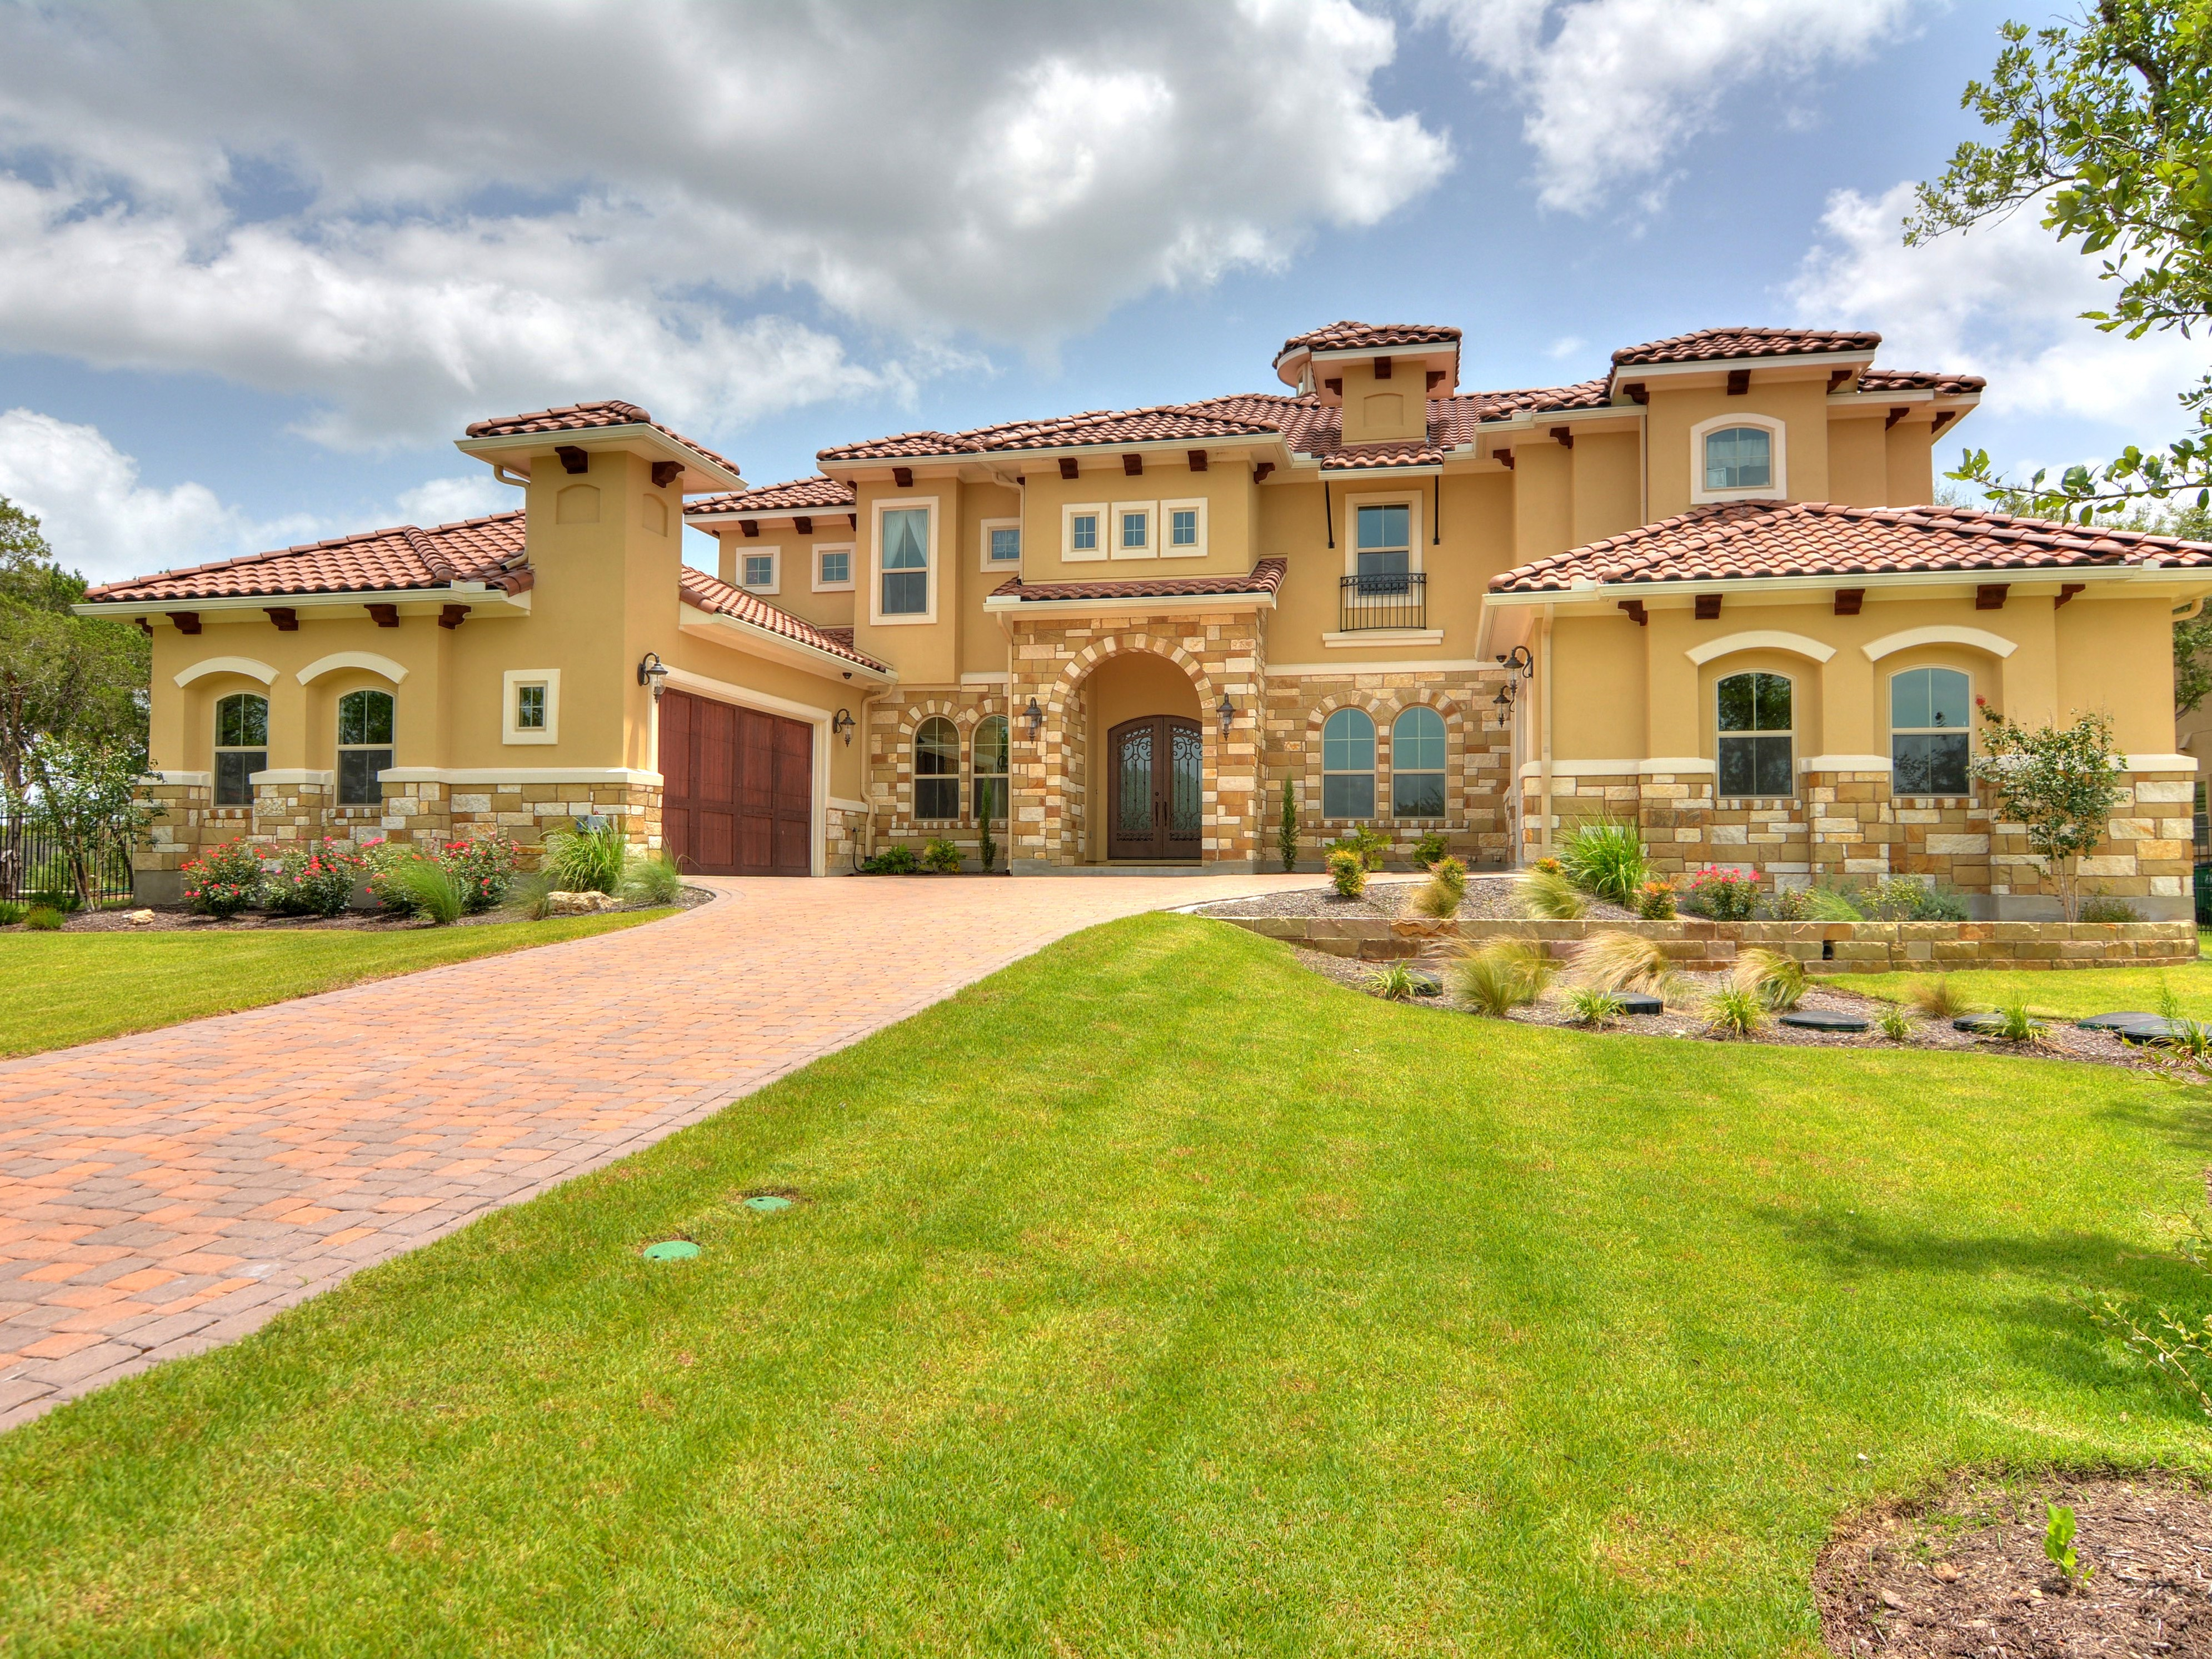 Single Family Home for Sale at Elegant Two Story with Beautiful Hill Country View 3713 Copper Ridge Ct Austin, Texas 78734 United States